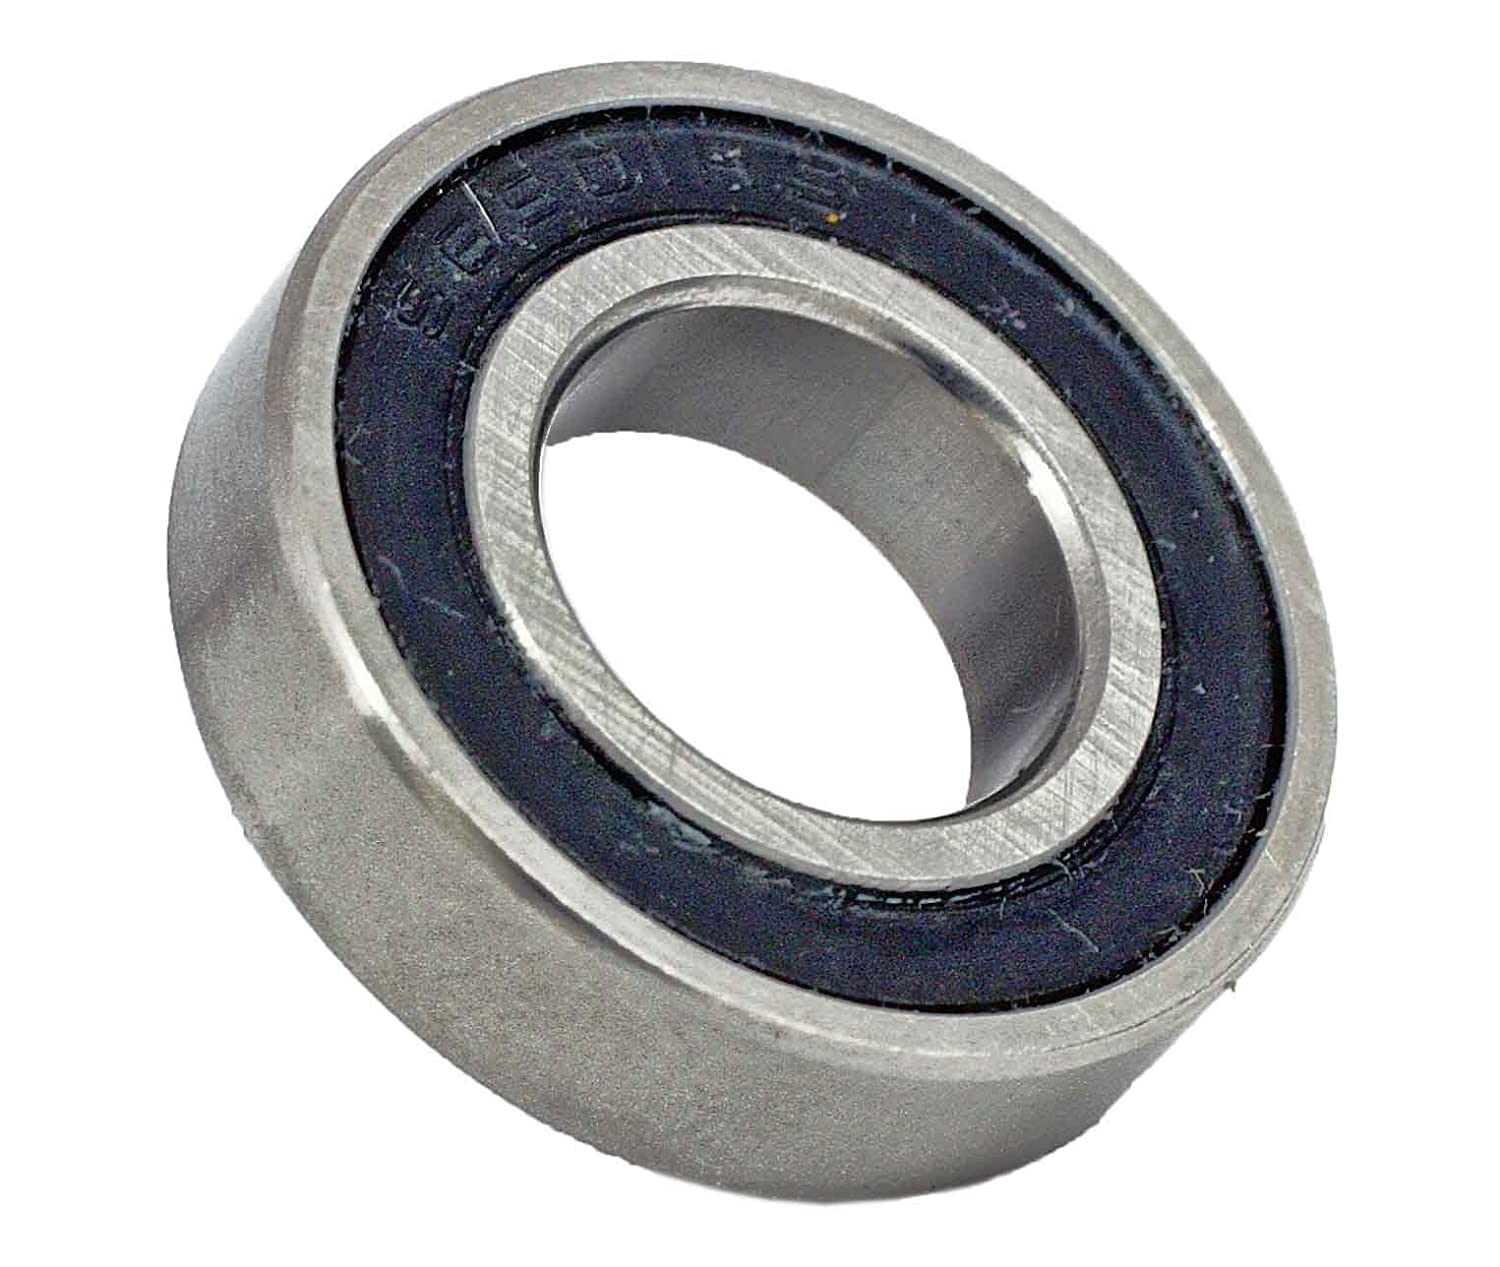 6901-2RS Ceramic Bearing 12x24x6 Stainless Steel Sealed ABEC-5 Ball